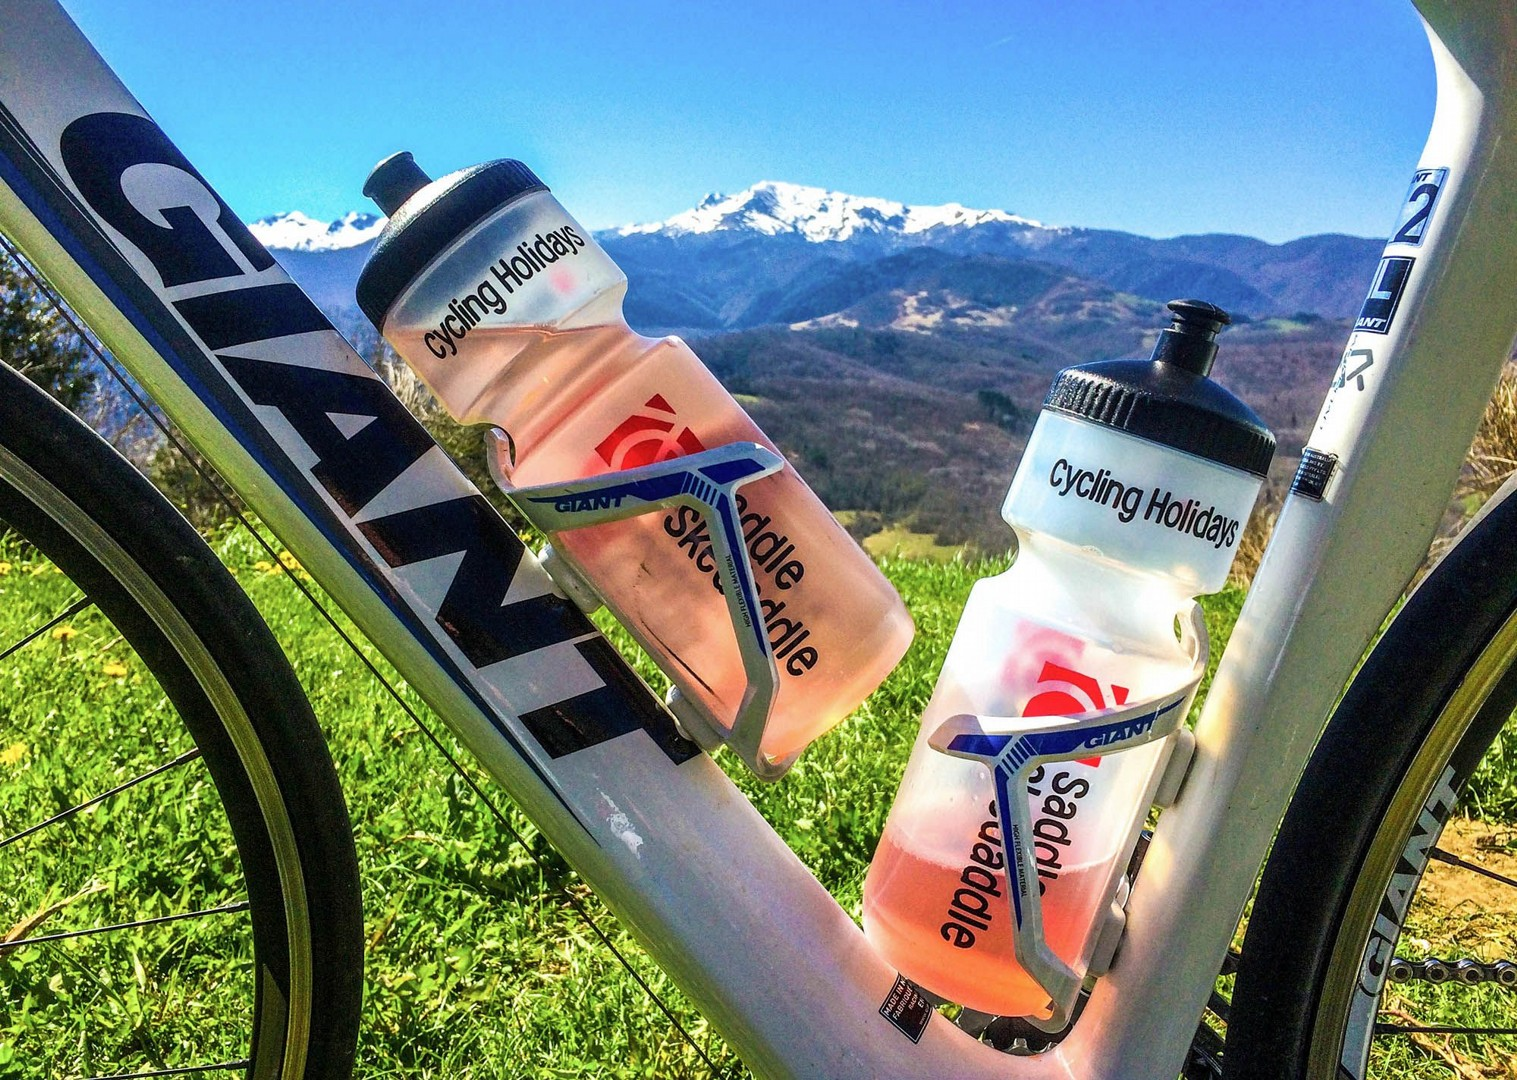 saddle-skedaddle-cycling-holidays-scenery-bike-drinks-water-bottle.jpg - France - Pyrenees Fitness Week (Grade 2-3) - Guided Road Cycling Holiday - Road Cycling